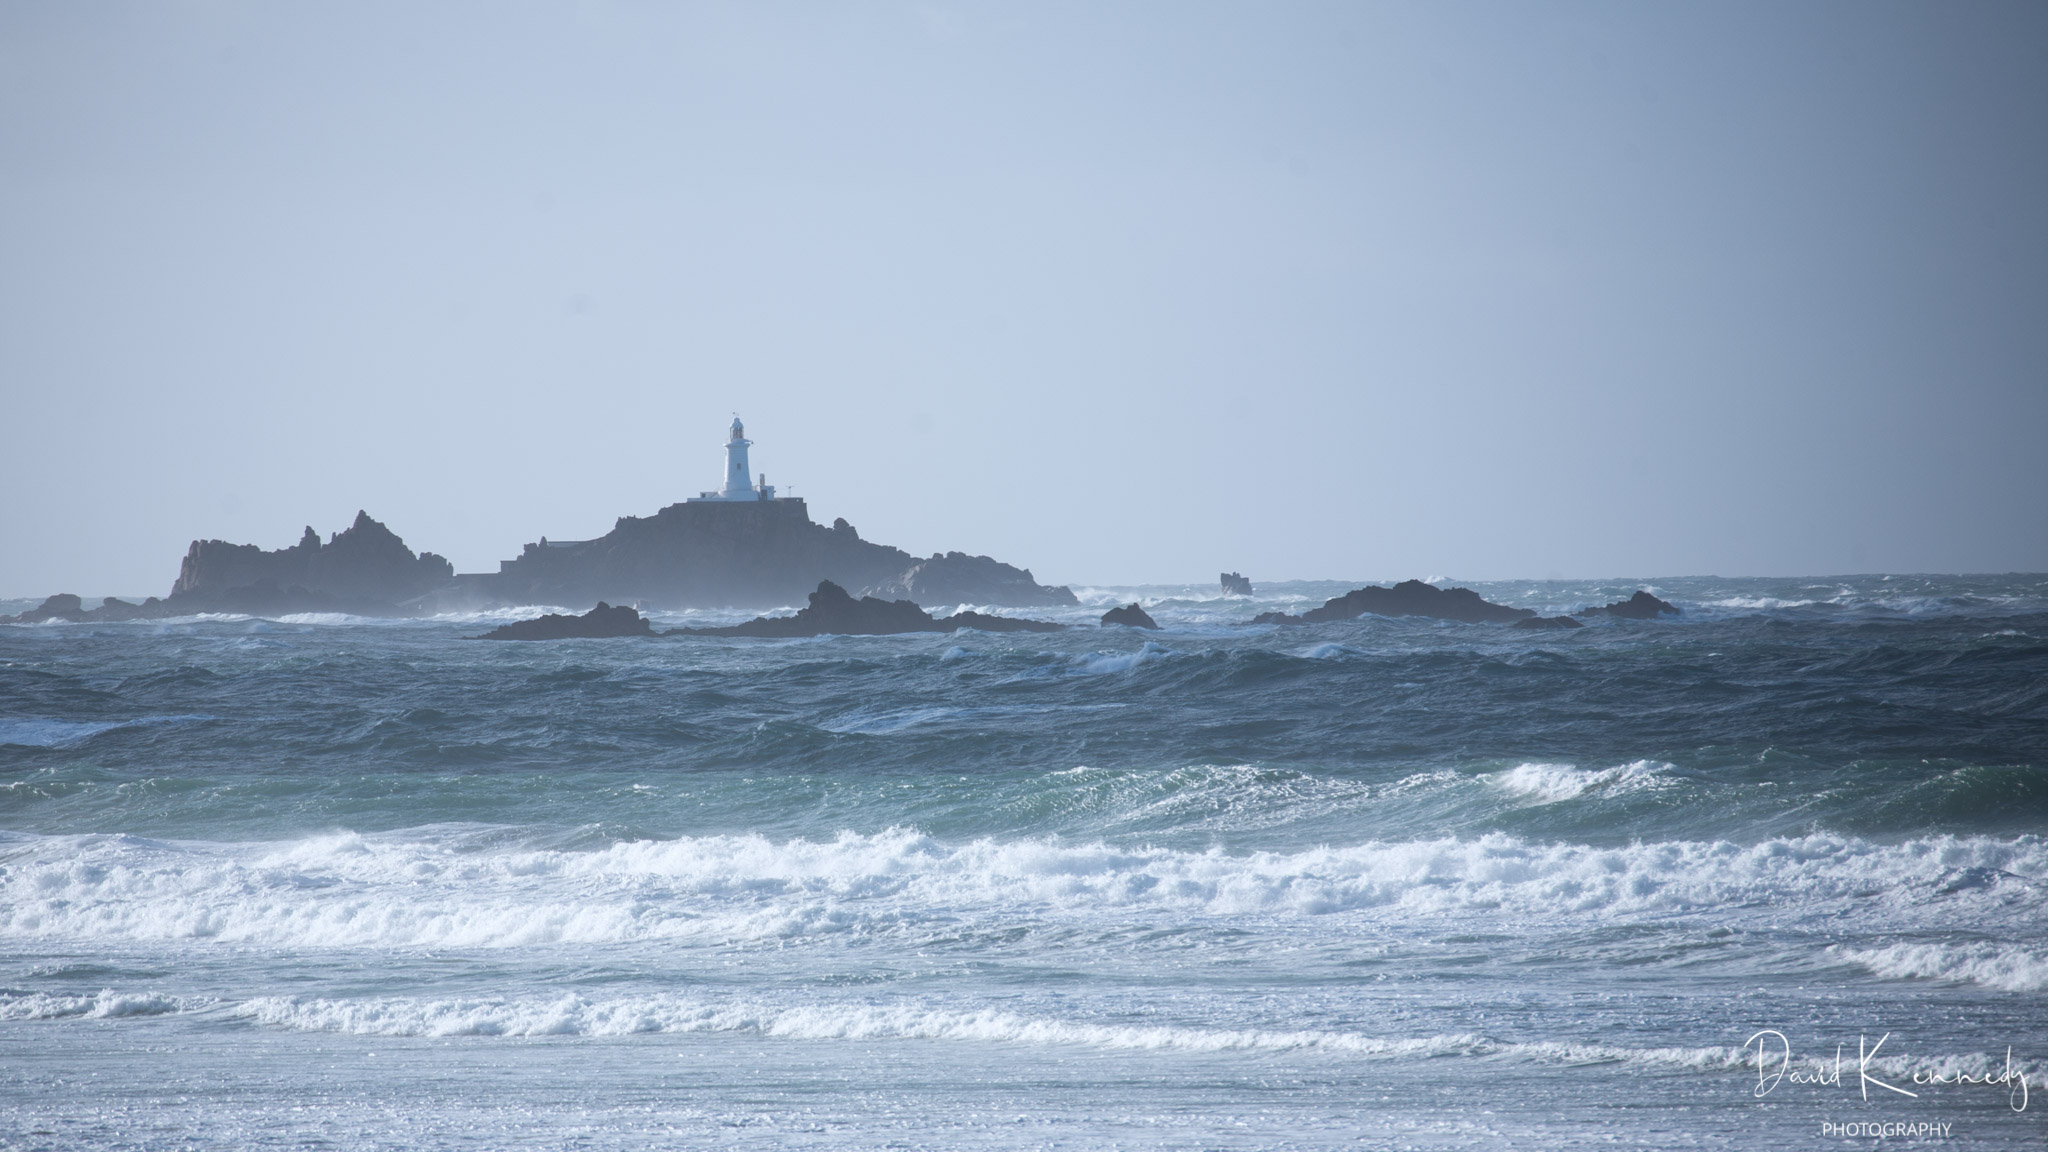 On a windy day, the waves break on the beach and on the rocks around the lighthouse